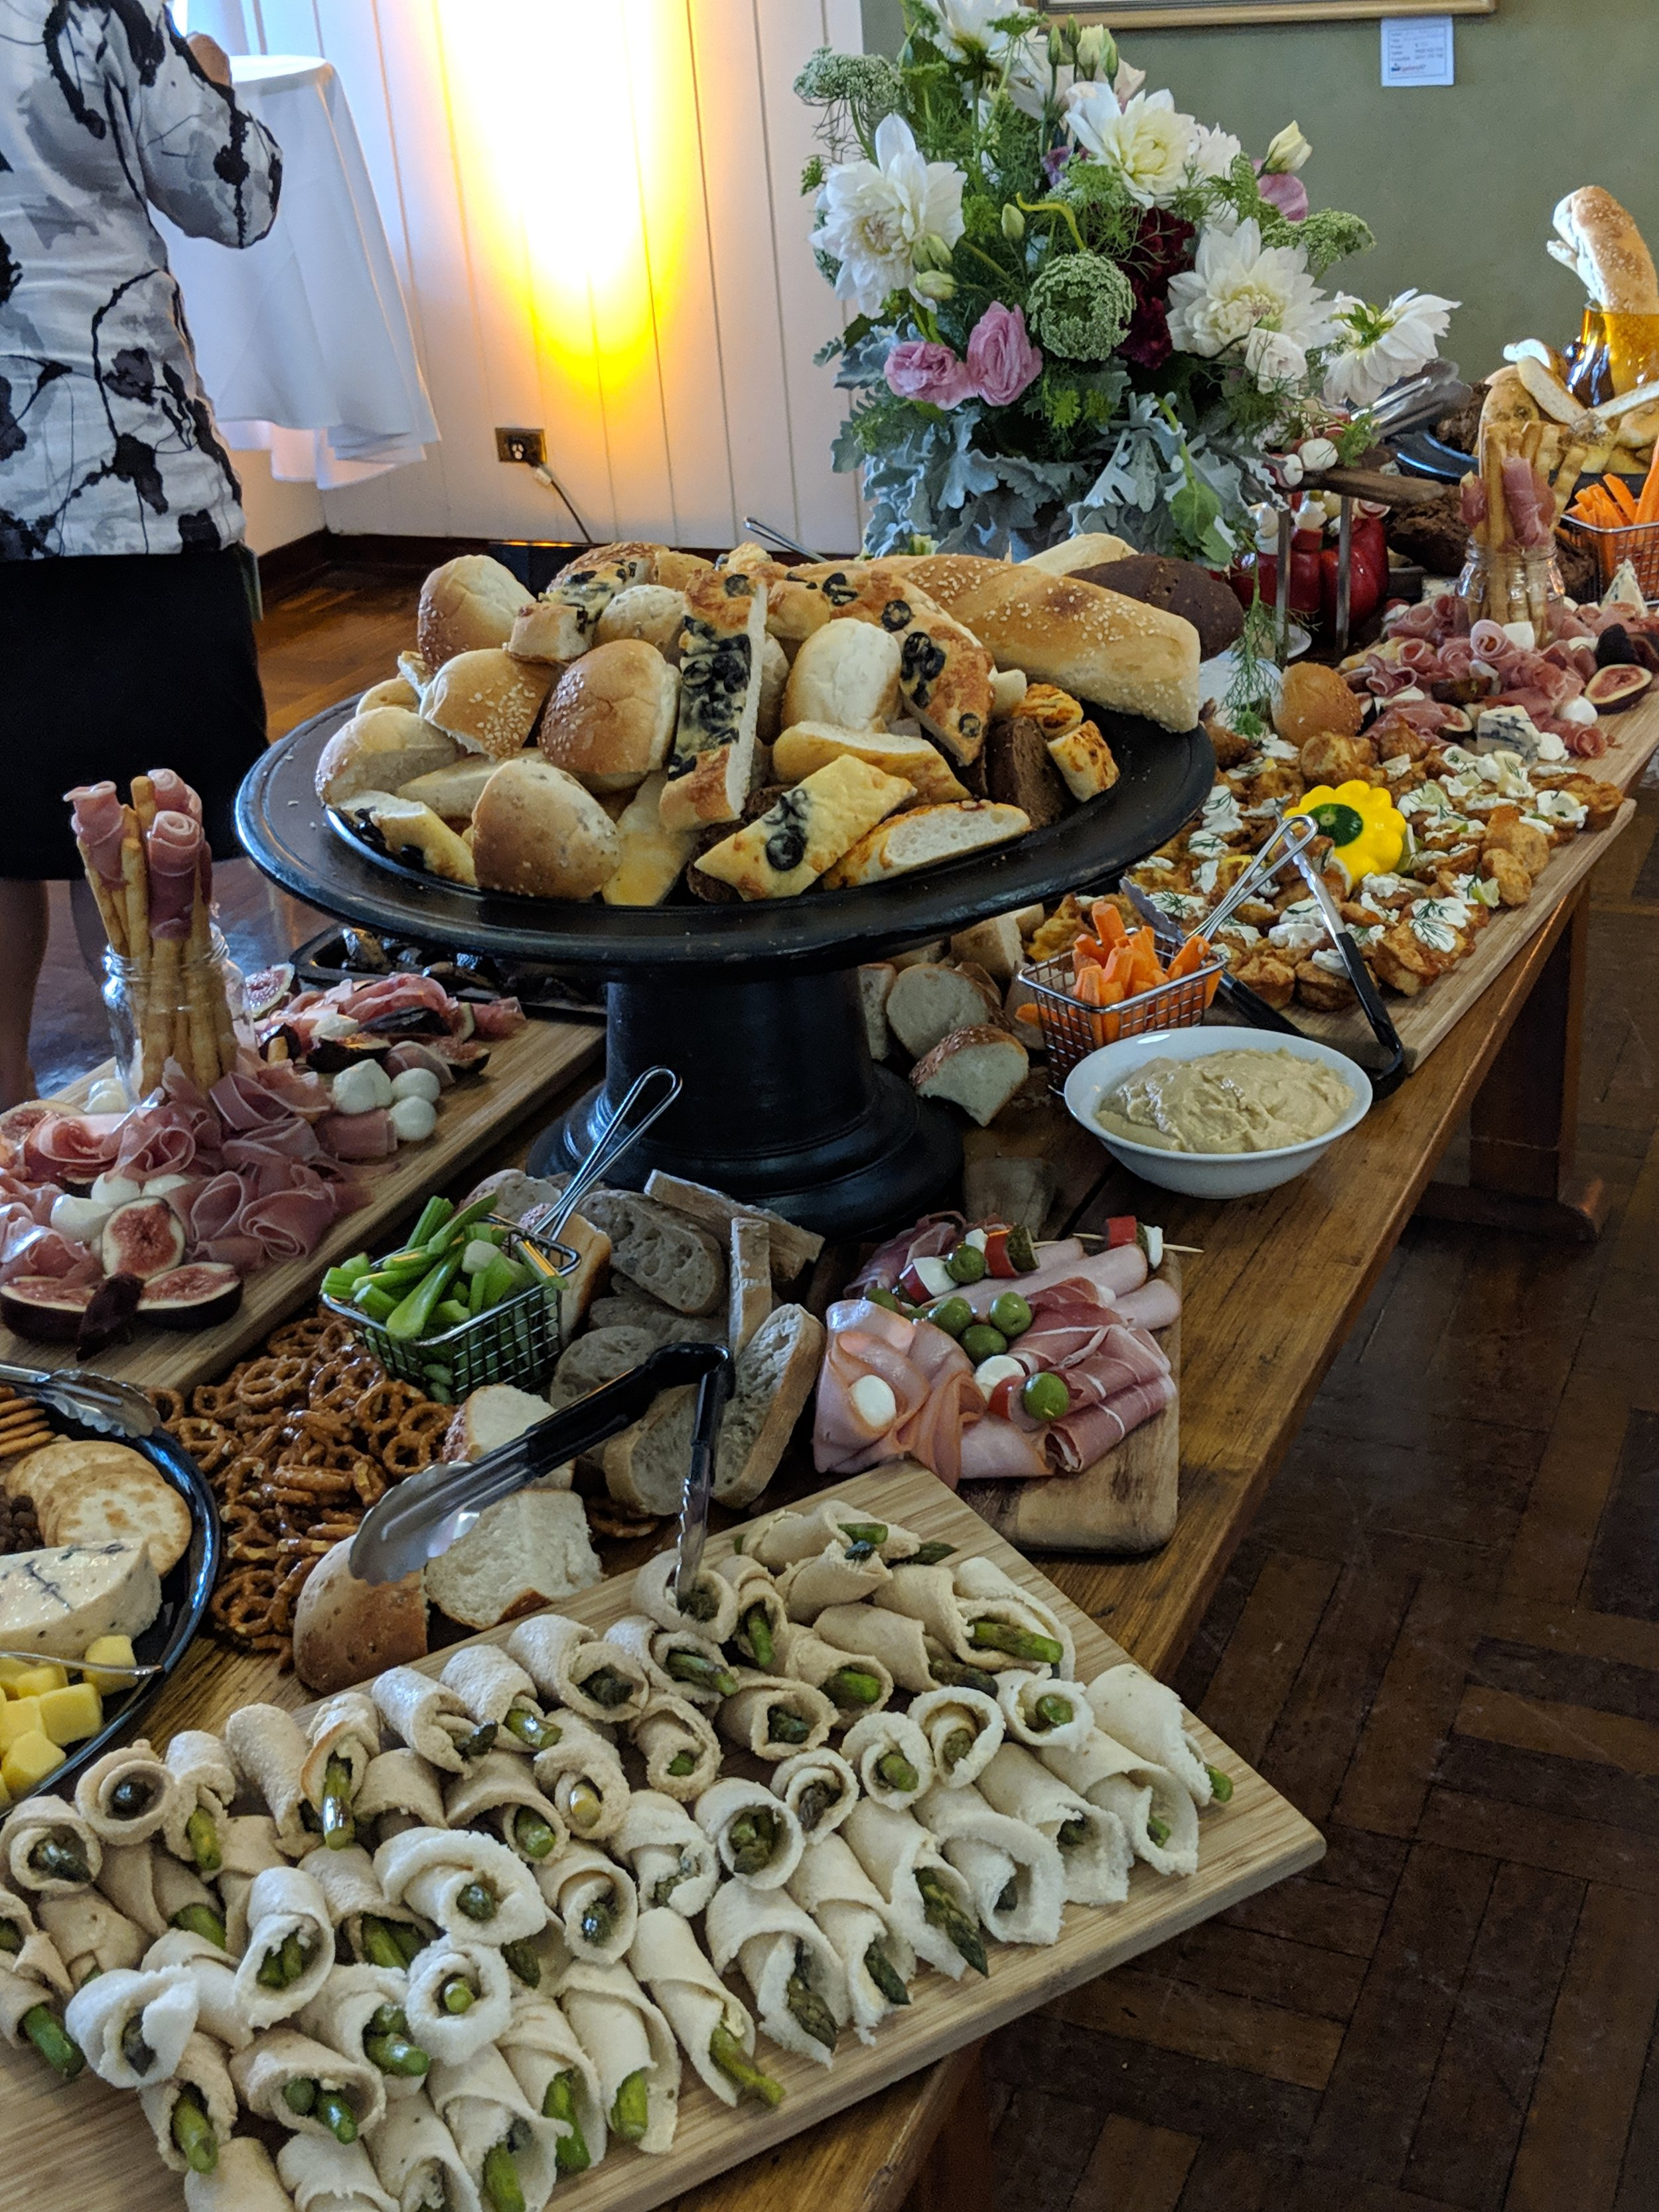 The grazing table laid out for guests to enjoy.jpg